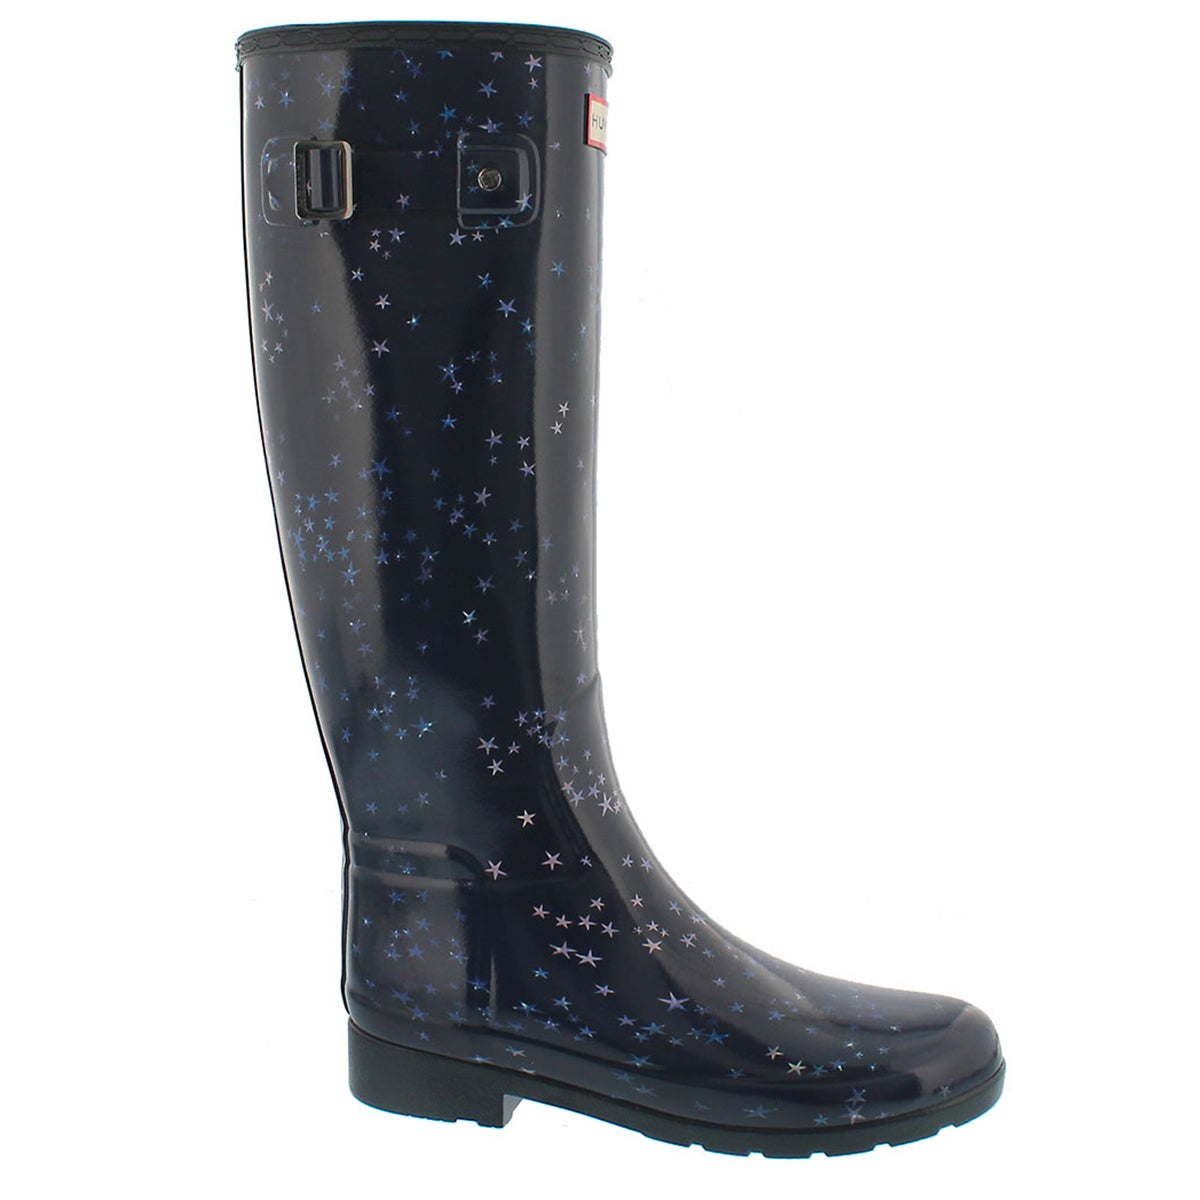 Women's REFINED TALL CONSTELLATION mdn rain boots